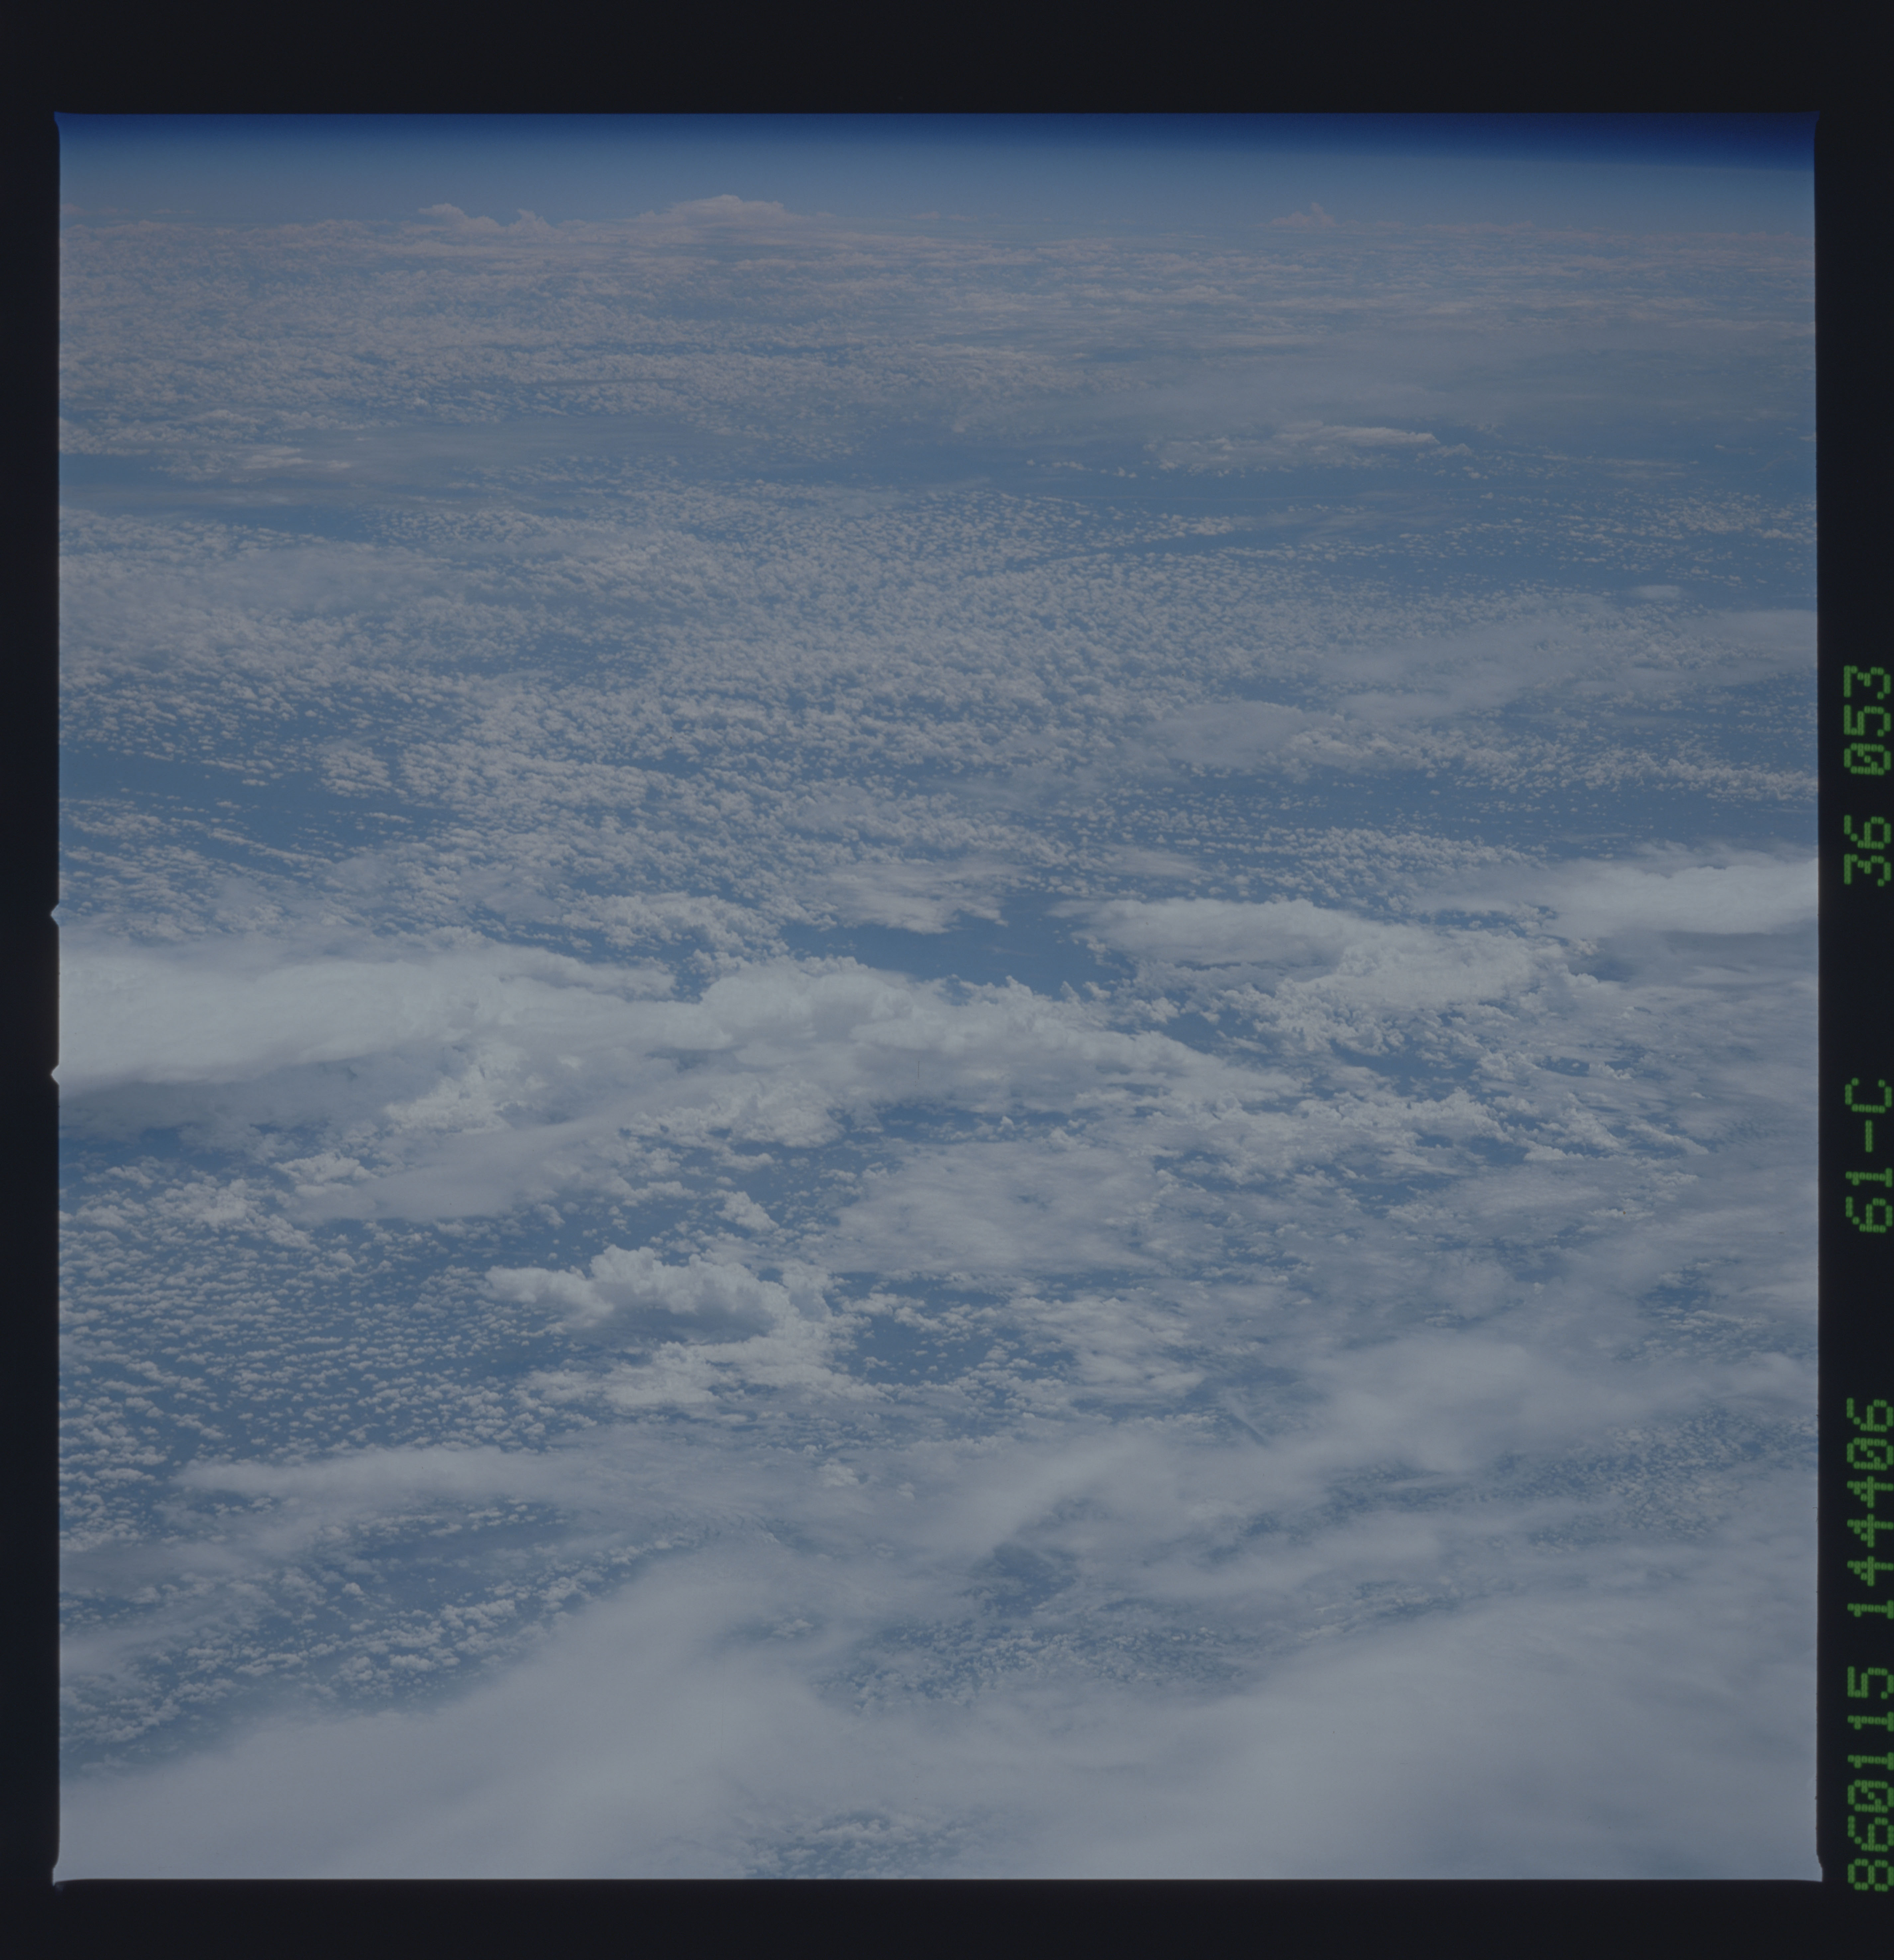 61C-36-053 - STS-61C - STS-61C earth observations